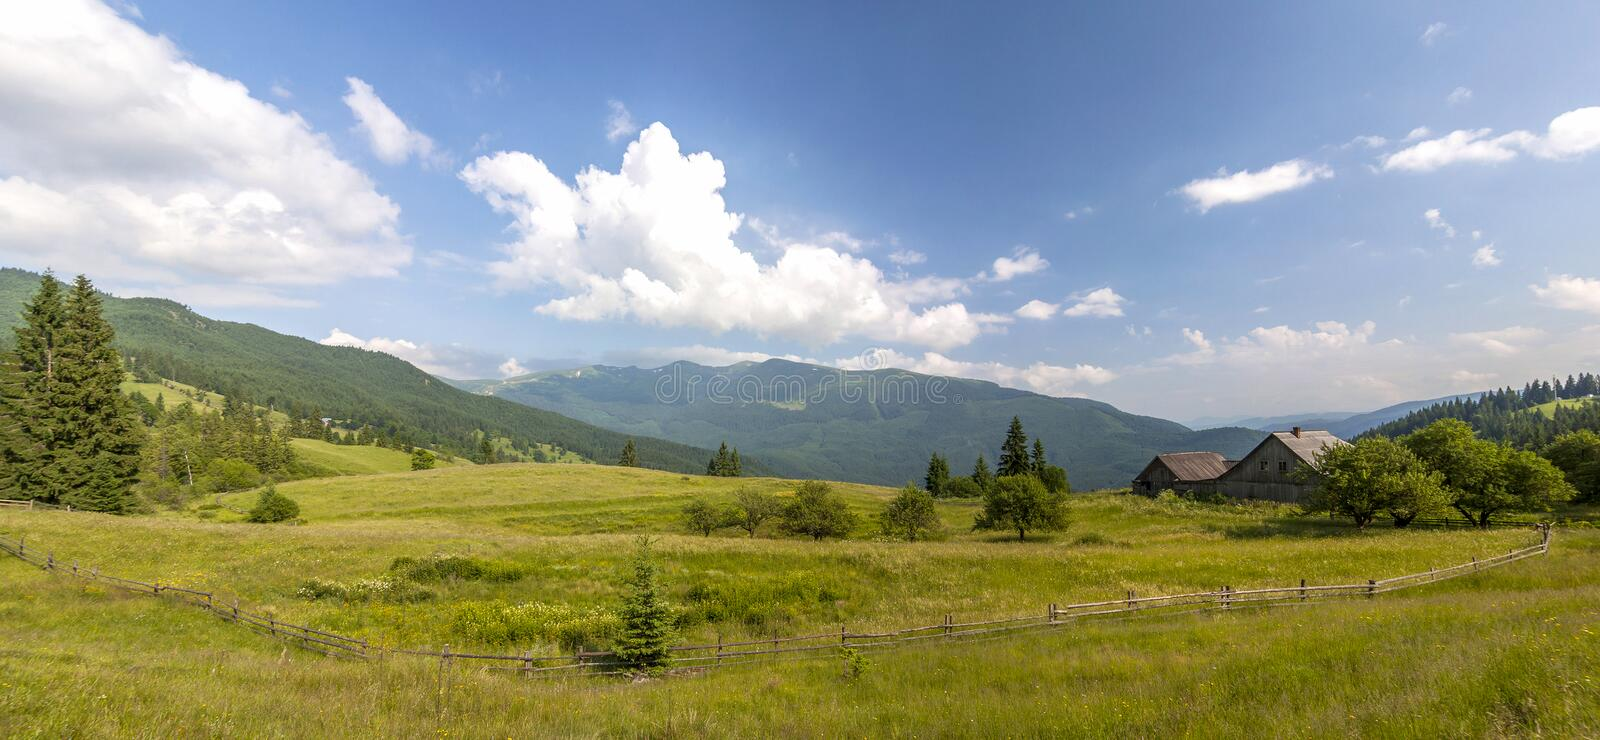 Village houses on hills with green meadows in summer day royalty free stock photo